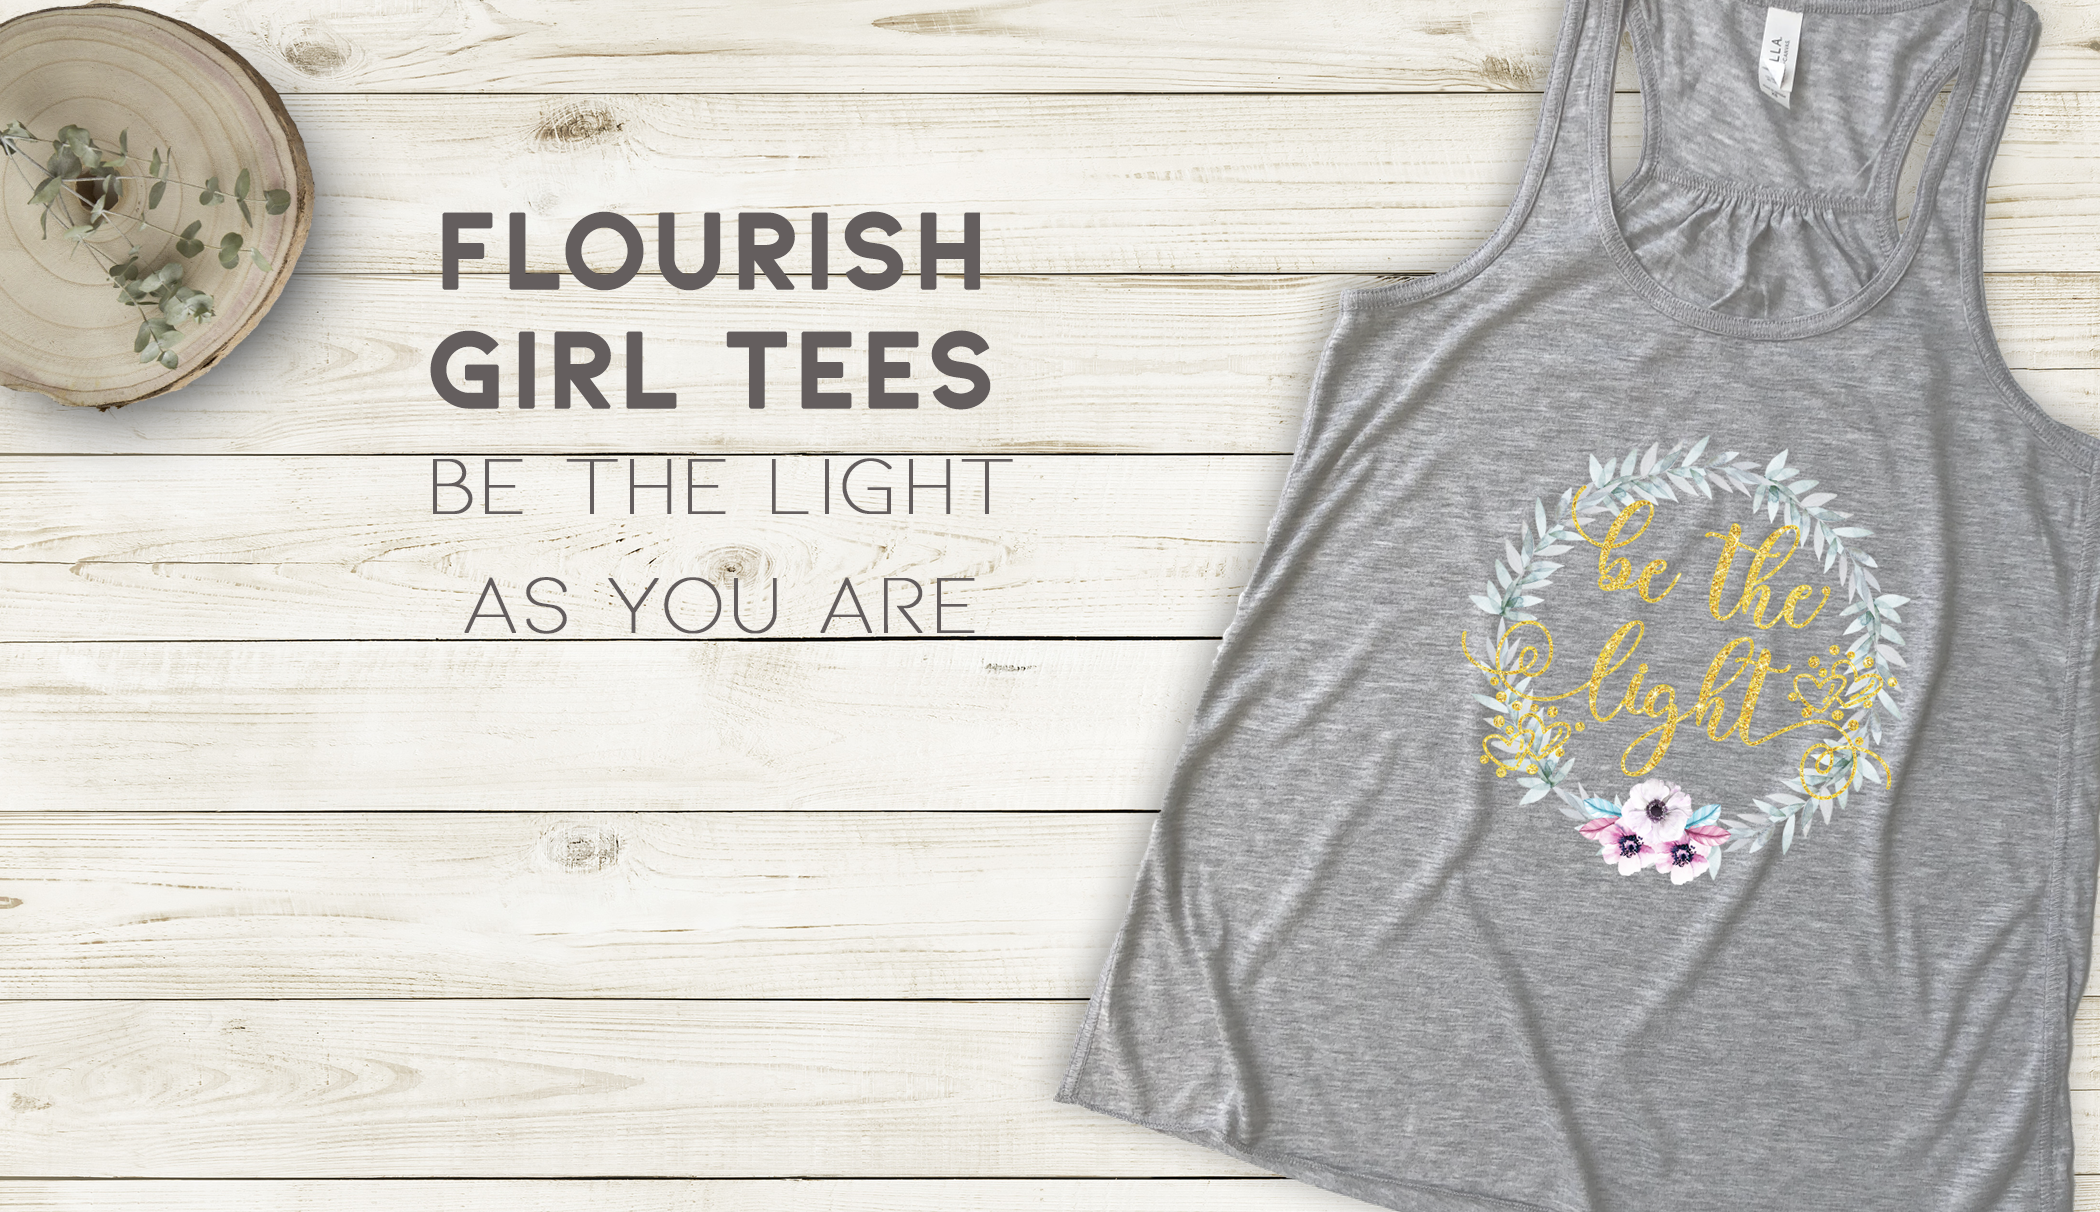 Flourish girls tees